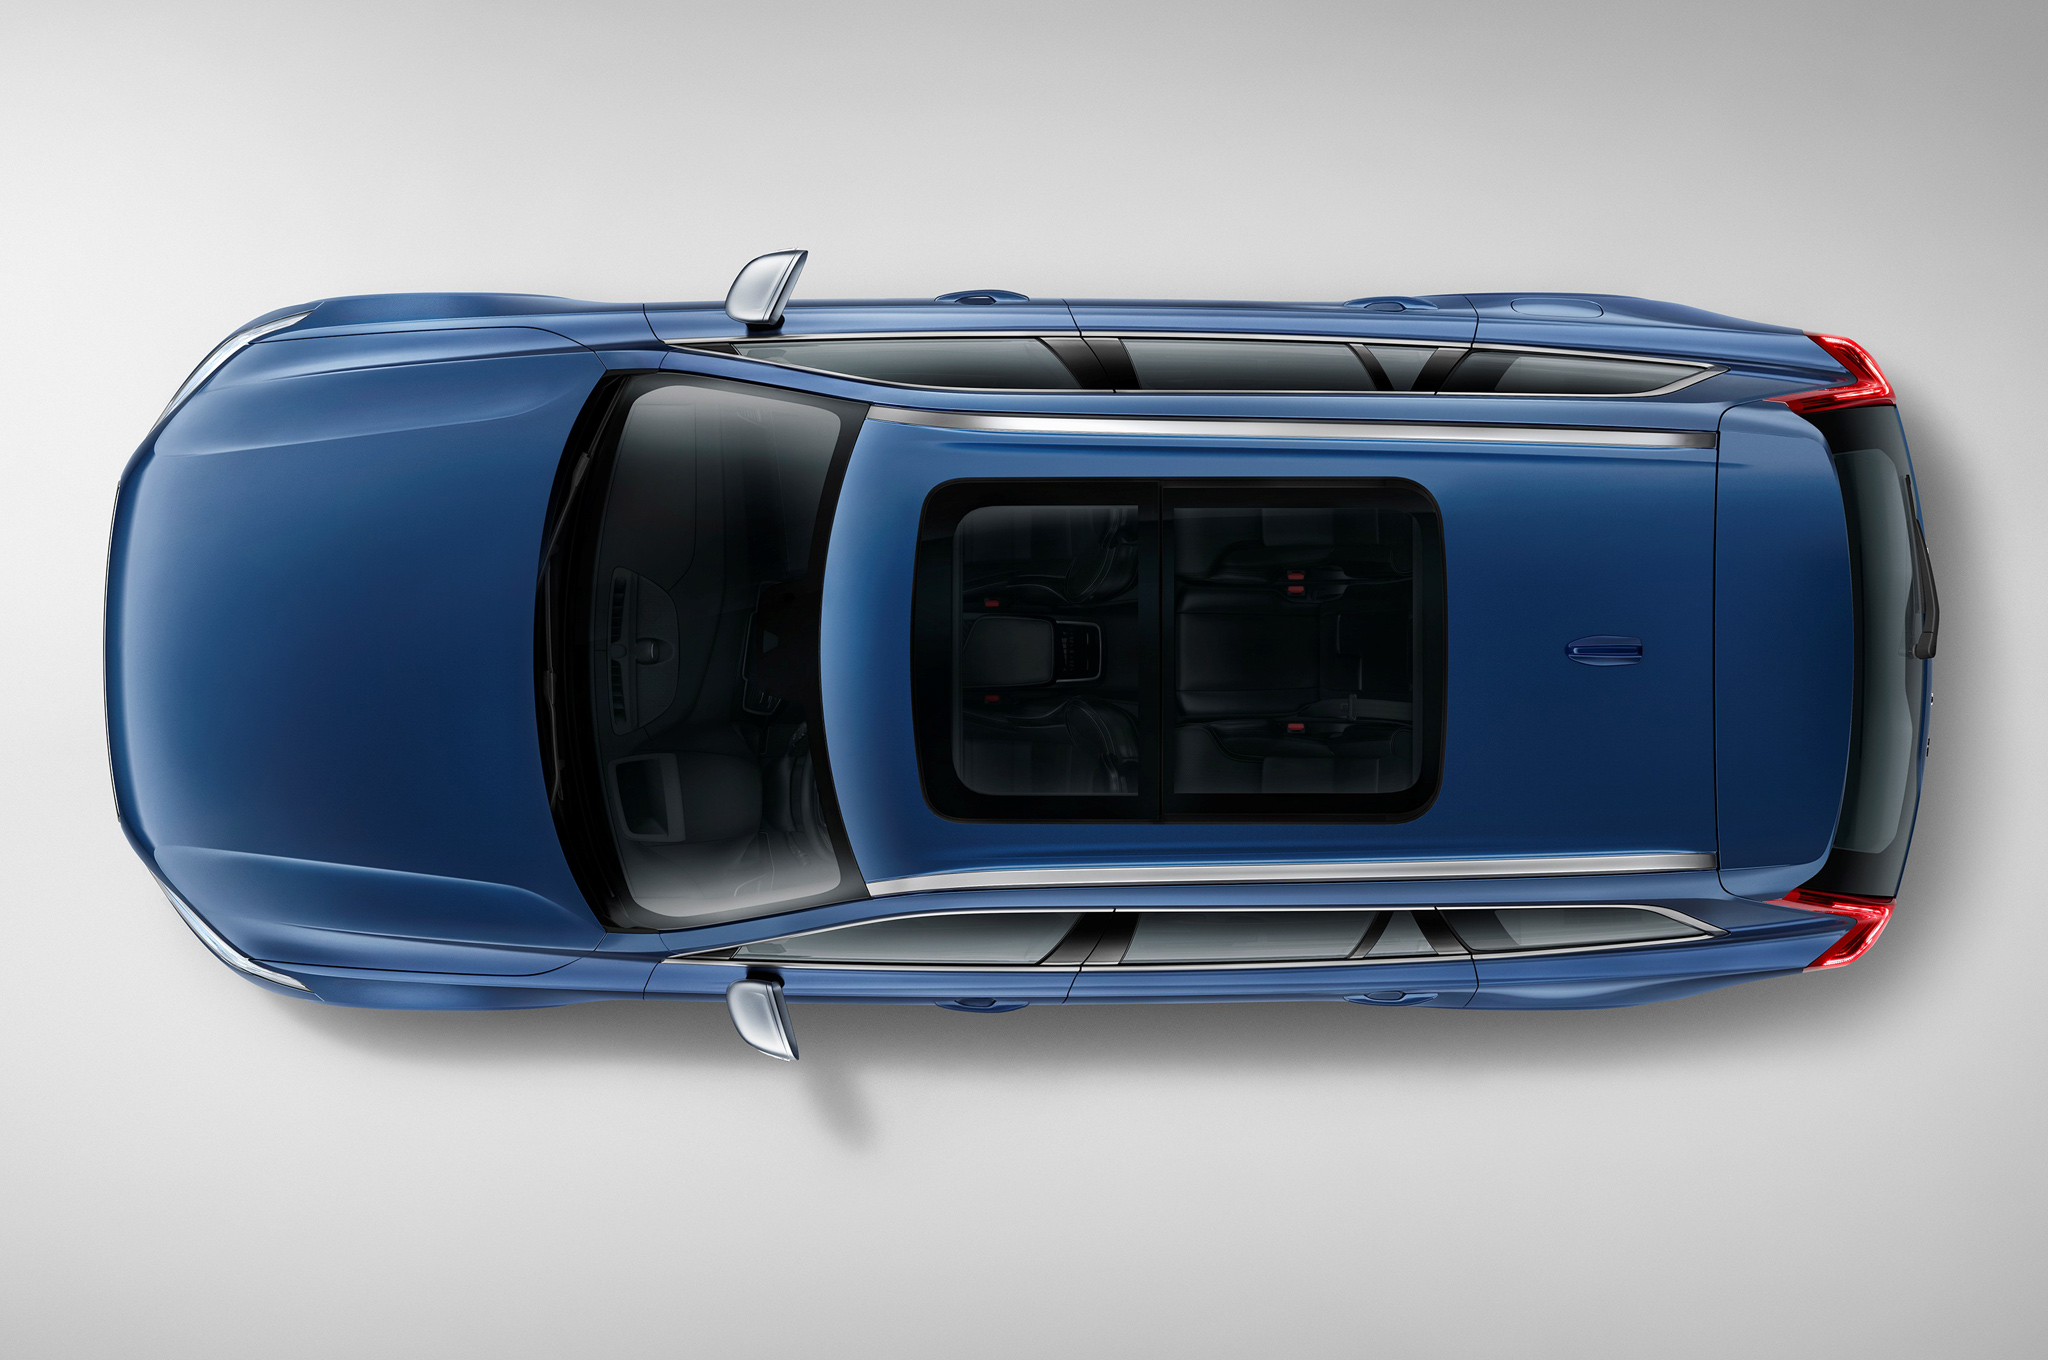 2016 Volvo Xc90 R Design Top View (Photo 8 of 18)